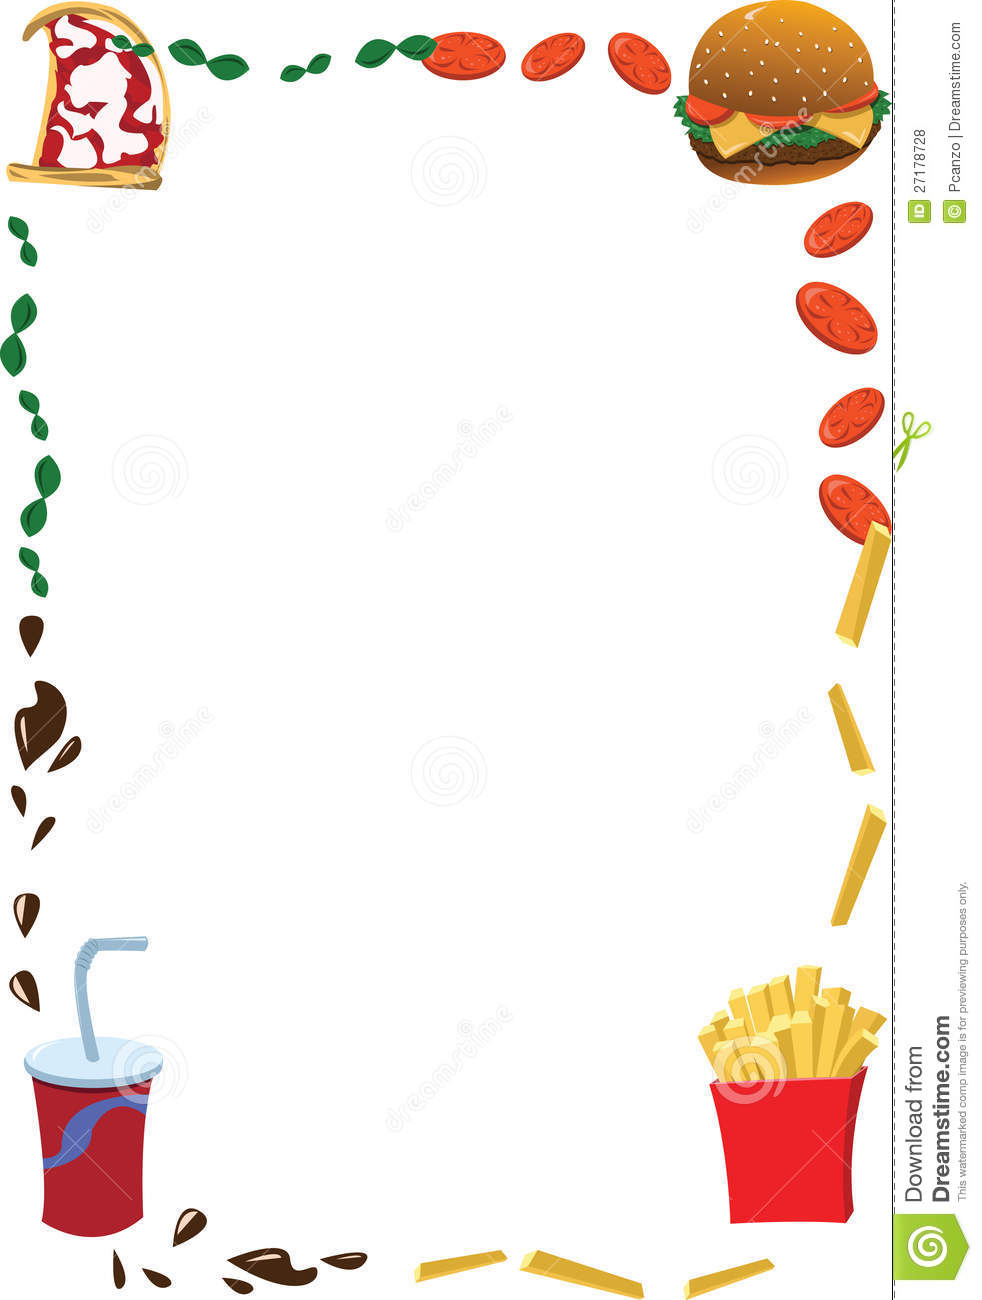 Tribal Cute Wallpaper Vertical Fast Food Frame Stock Vector Illustration Of